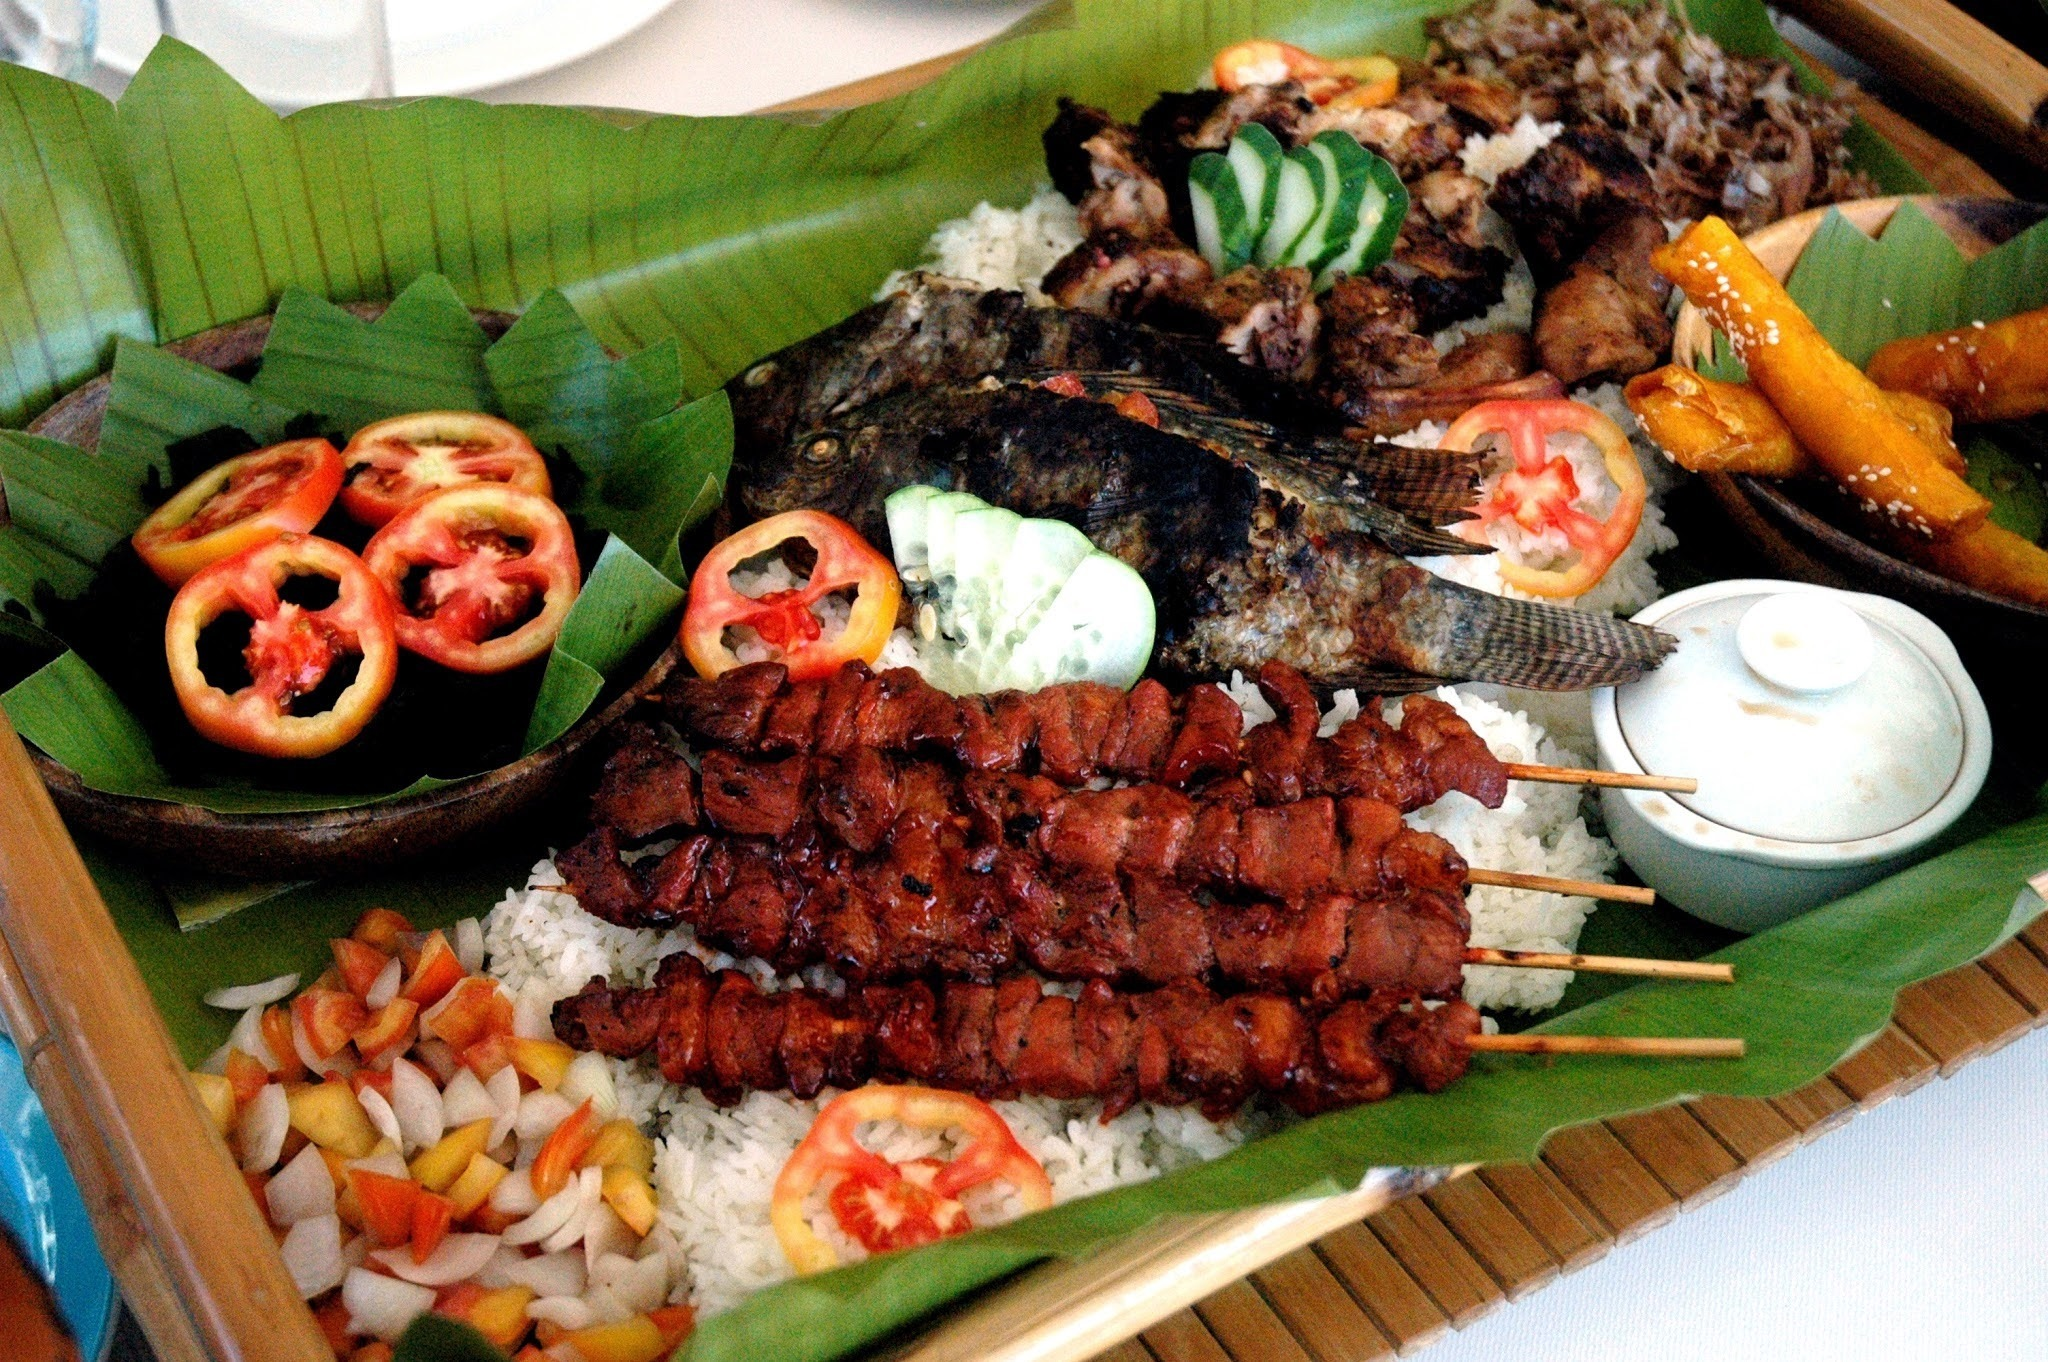 Flavors of Ilocos: Sun, Sand, and Sea and a Boodle Feast at Vitalis Resort & Spa